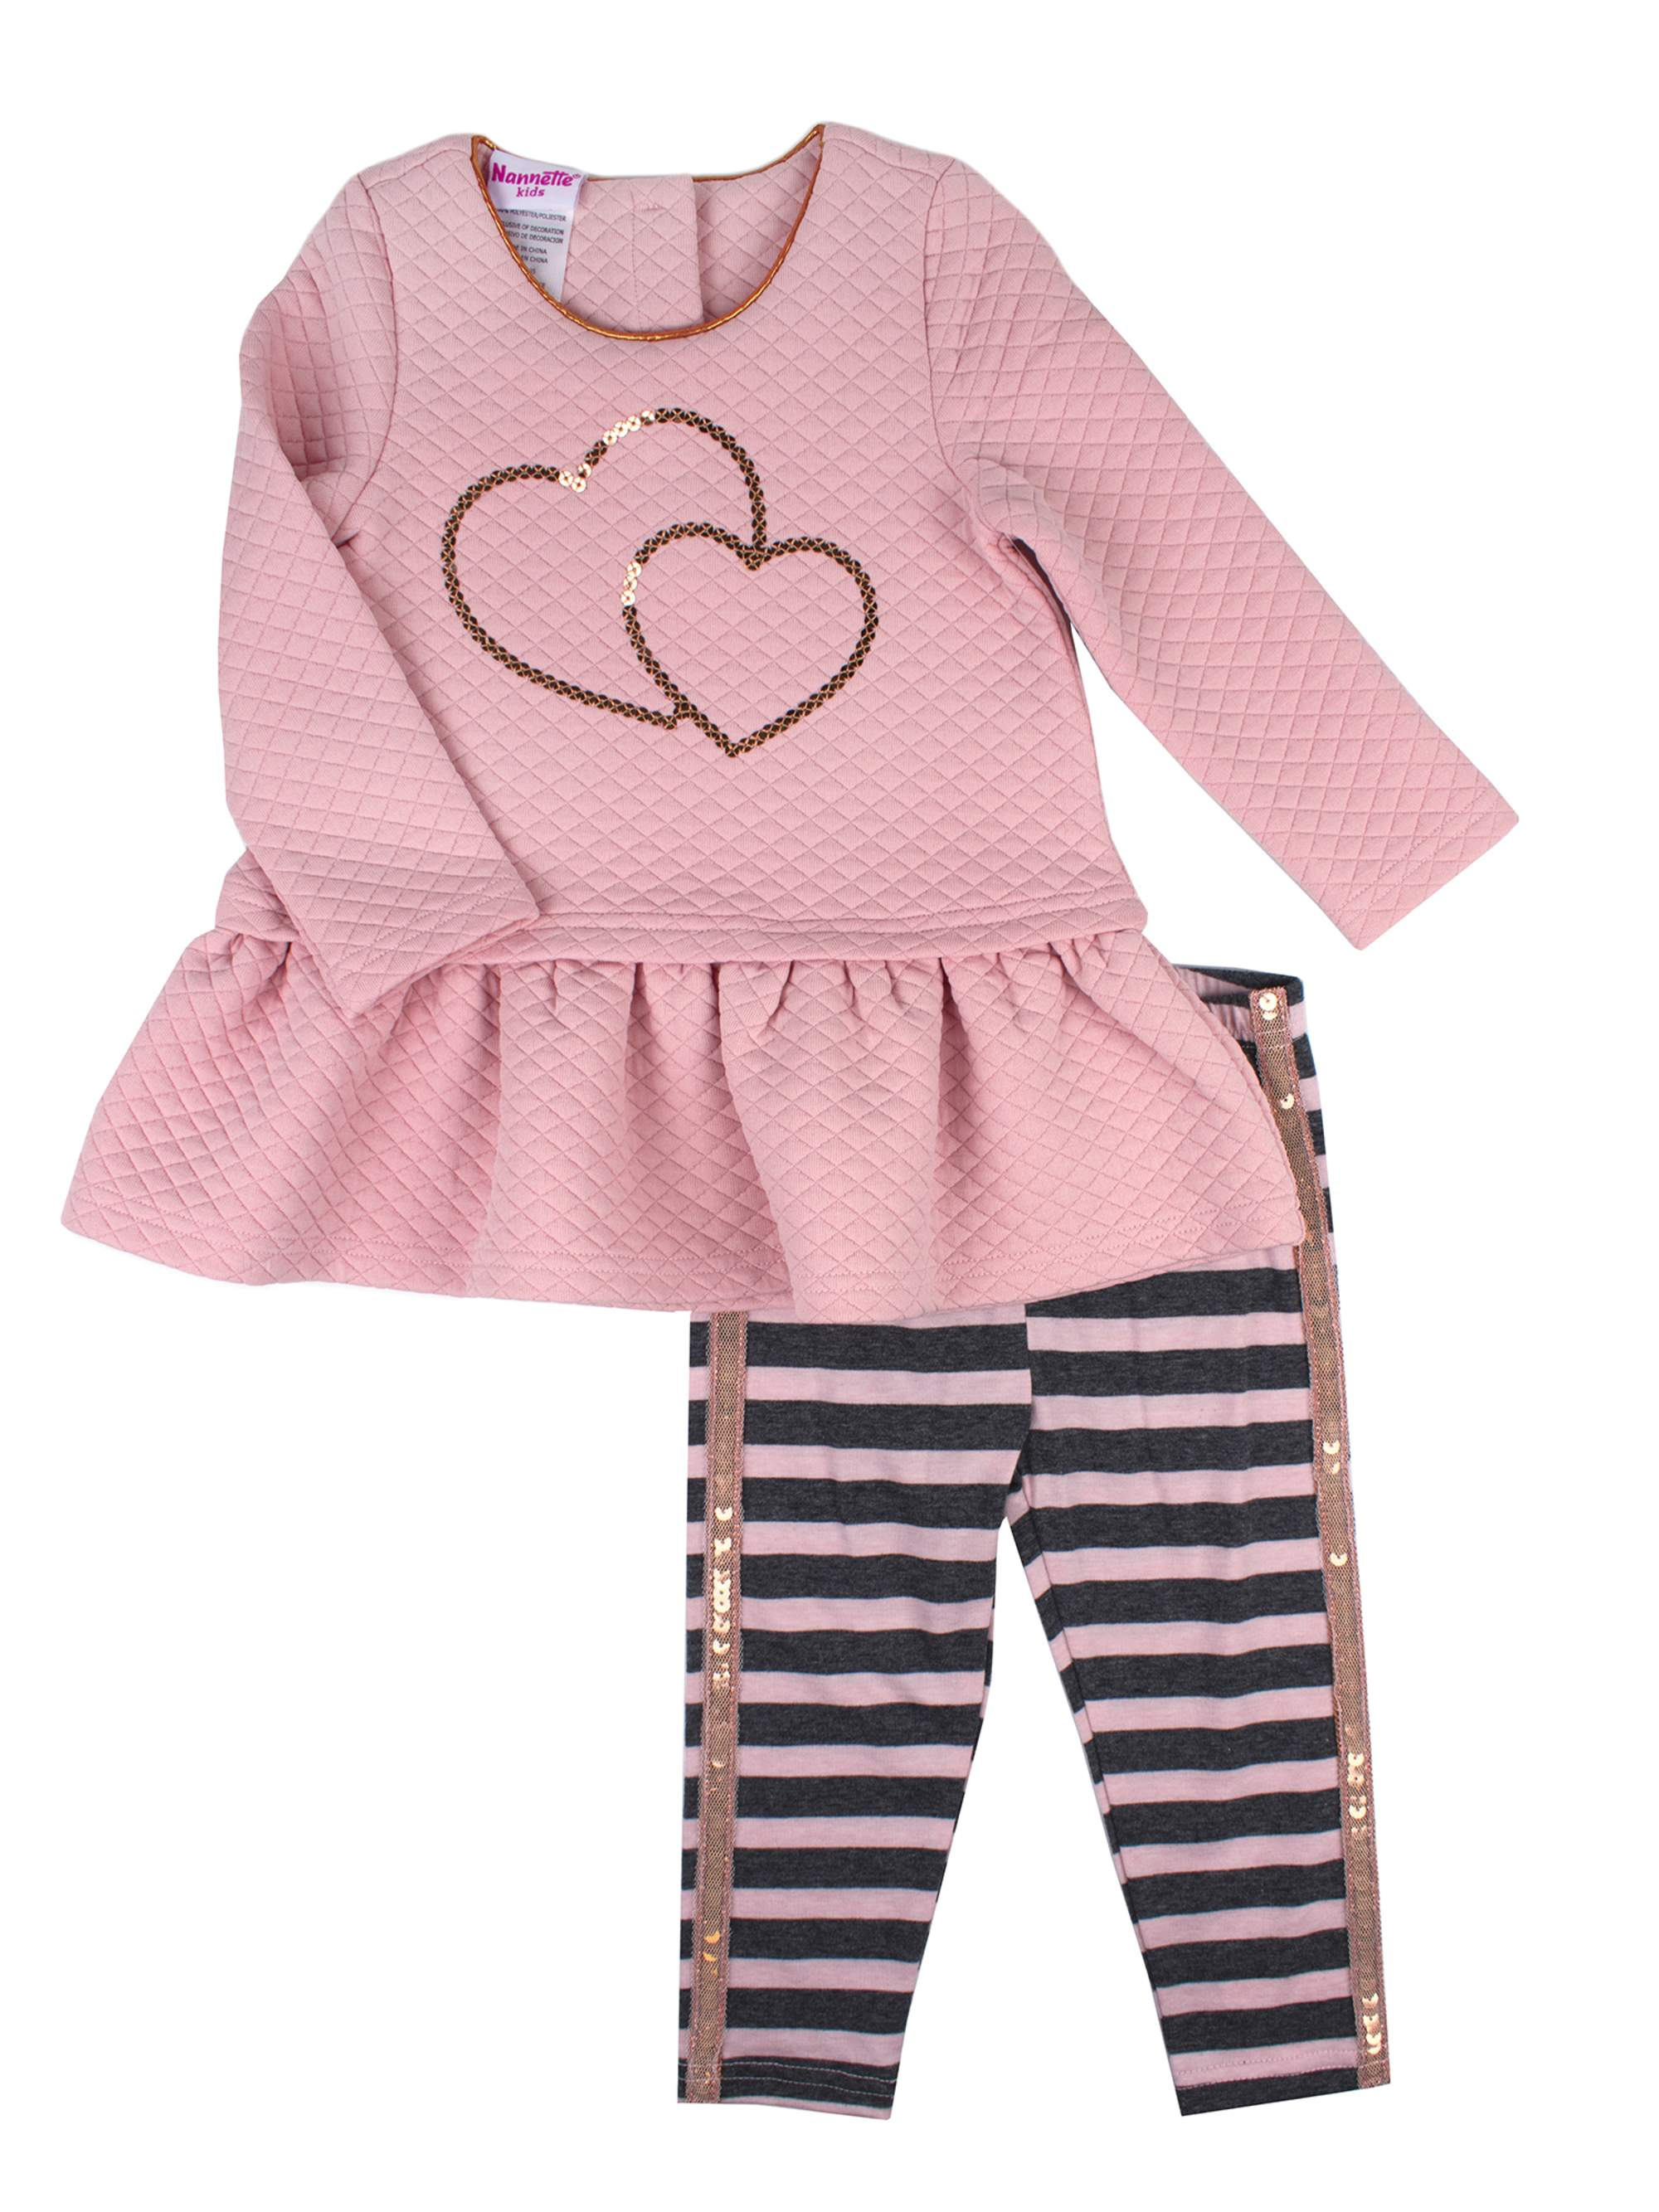 Sequin Quilted Top and Legging, 2-Piece Outfit Set (Little Girls)